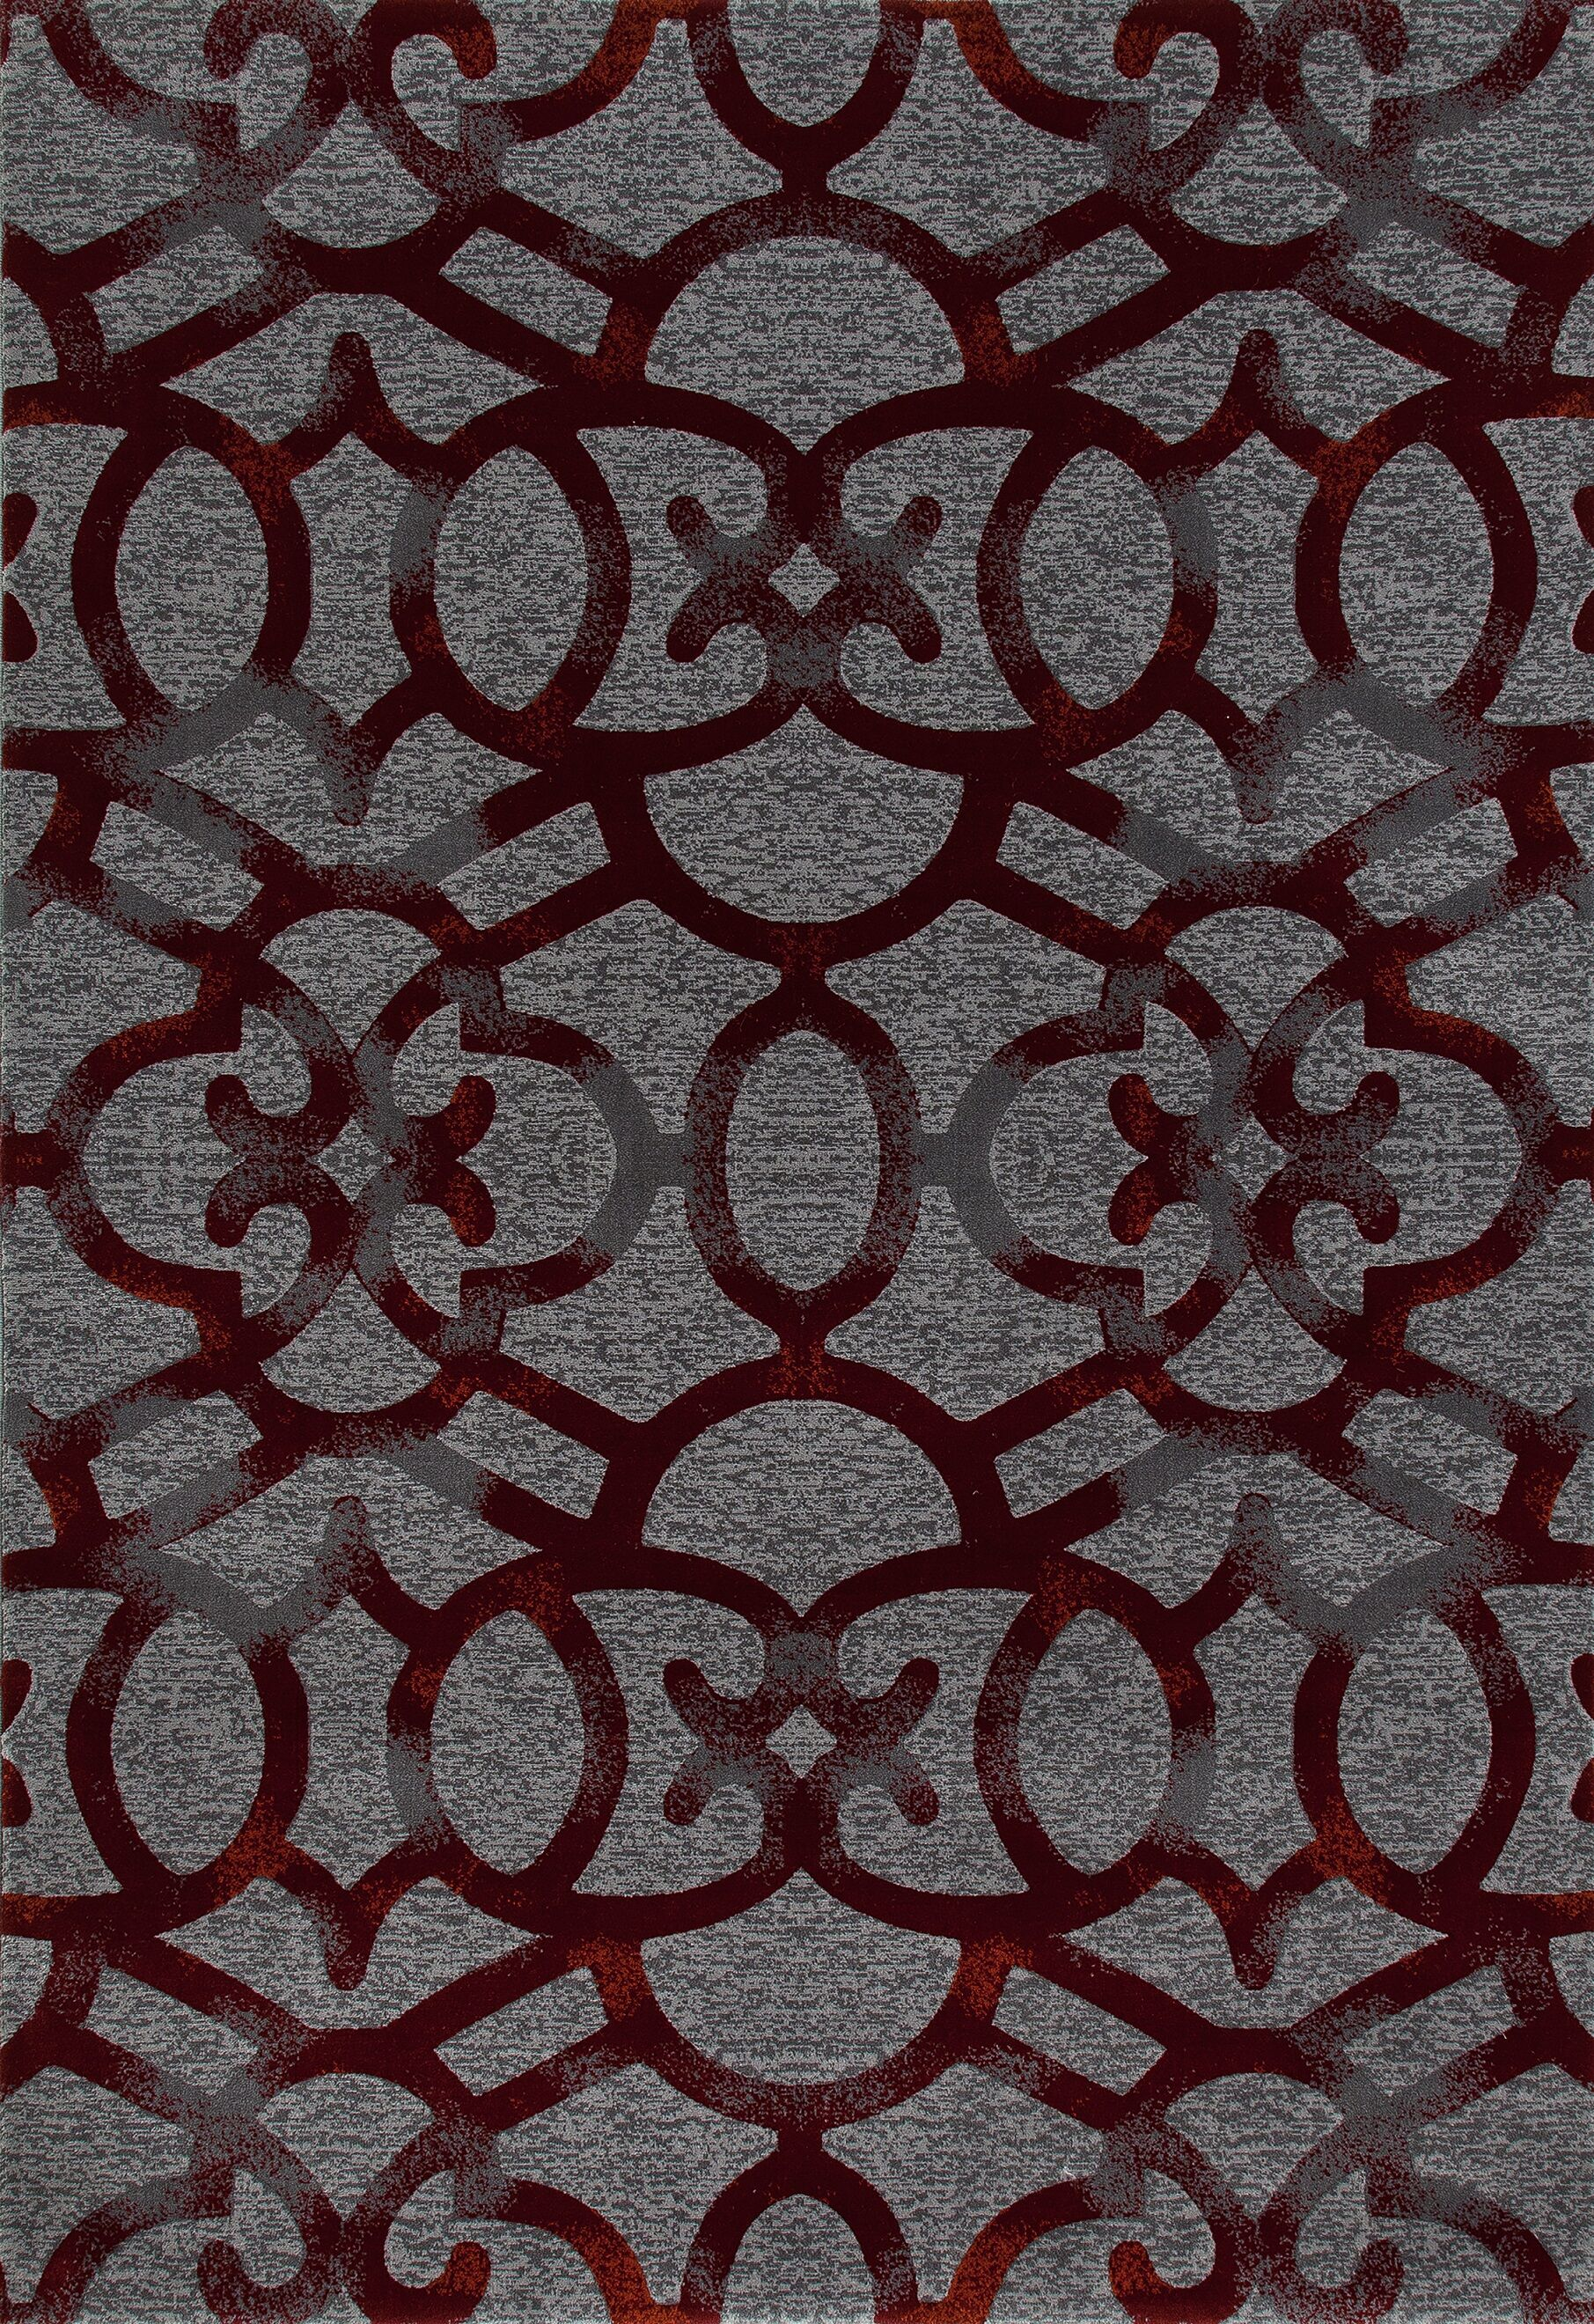 Delanie Red Area Rug Rug Size: 6'7 x 9'6